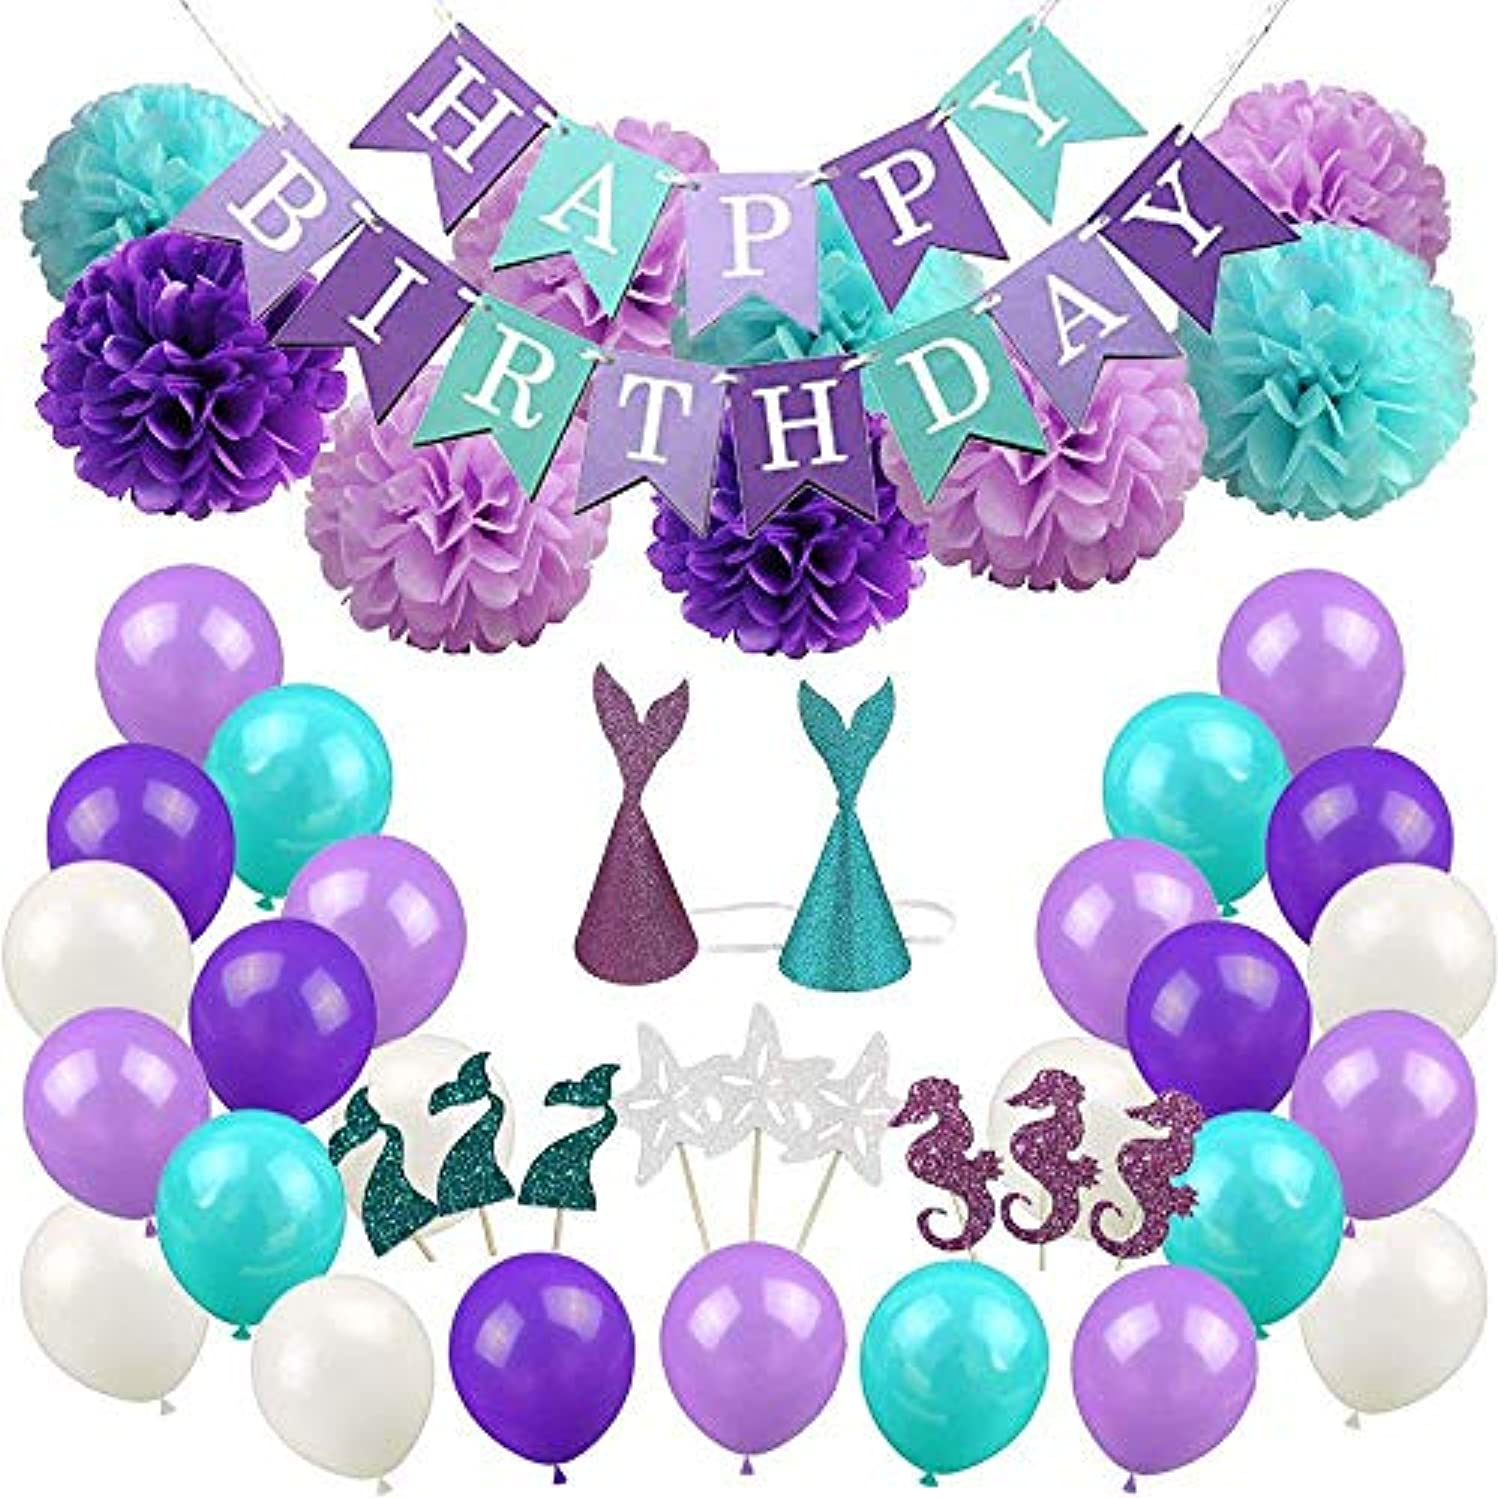 Happy Birthday Decoration Purple Blue Party Suppiles for Adults Girl Kid 76pcs Set Banner Balloons Paper Pompoms Flowers Hanging Swirl Decor Favors Baby Shower First Birthday by Mainiusi